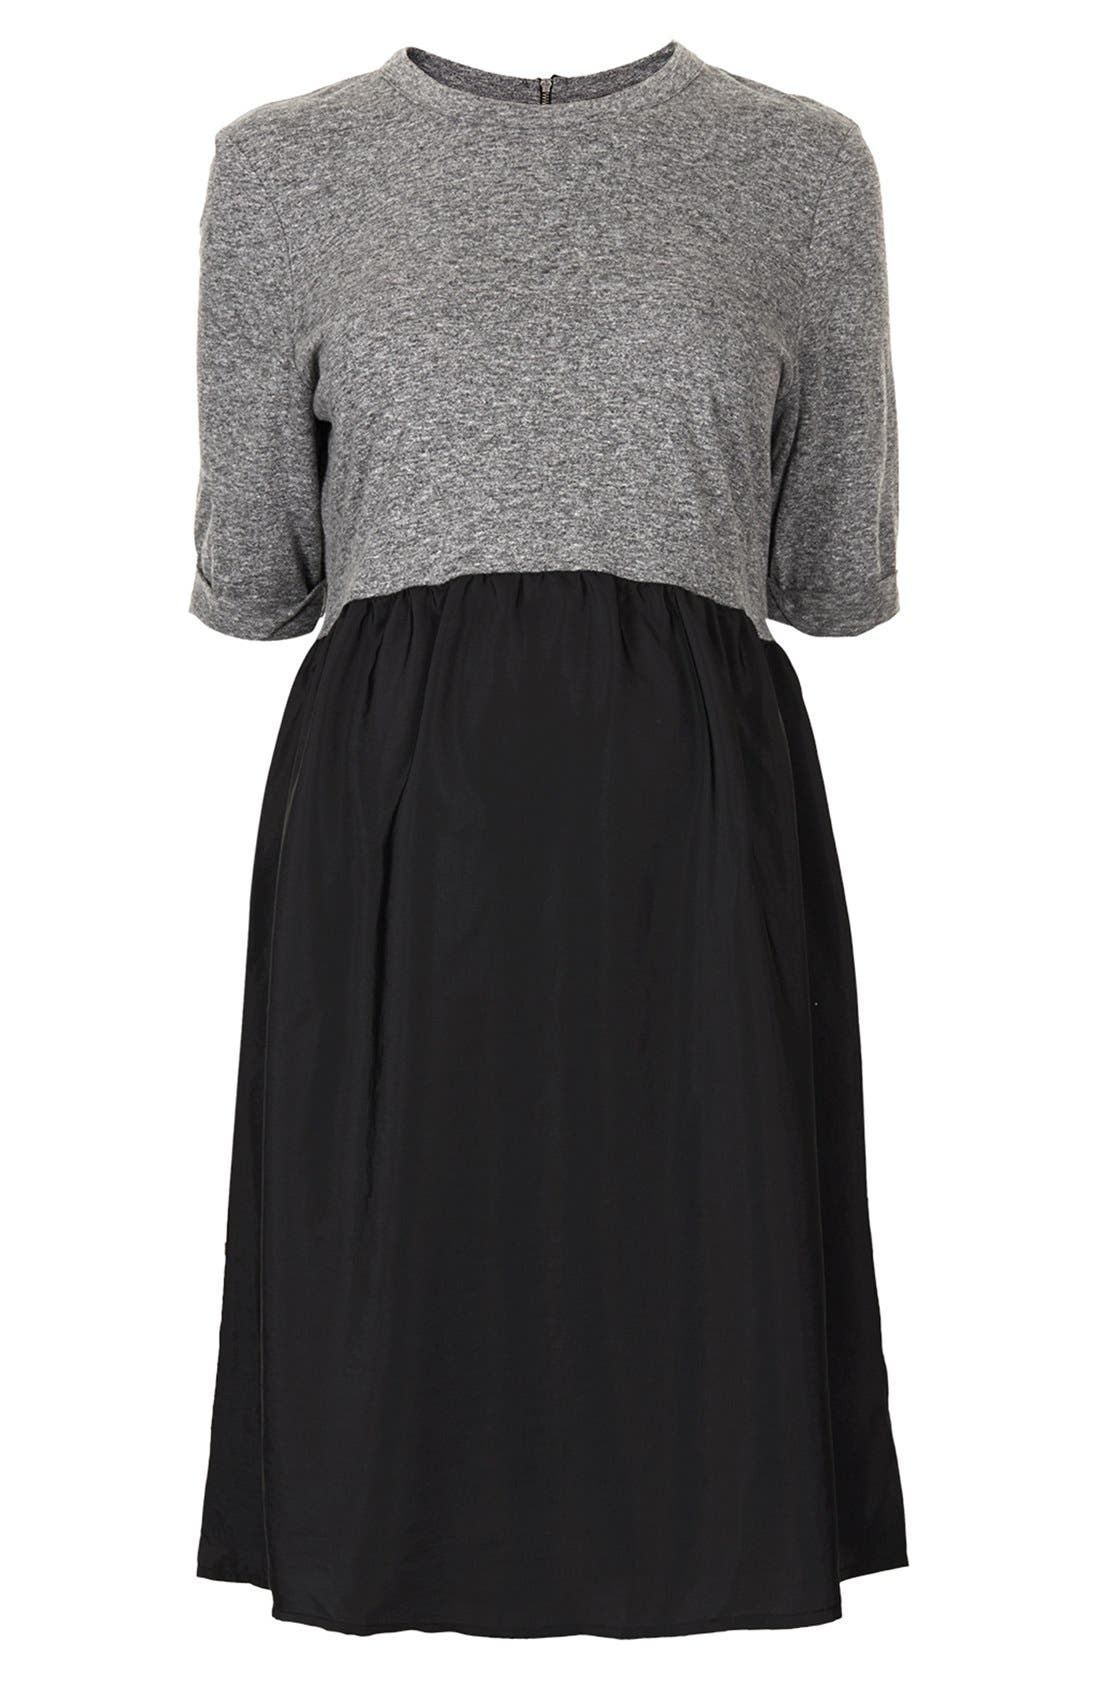 Alternate Image 1 Selected - Topshop Jersey Maternity Dress